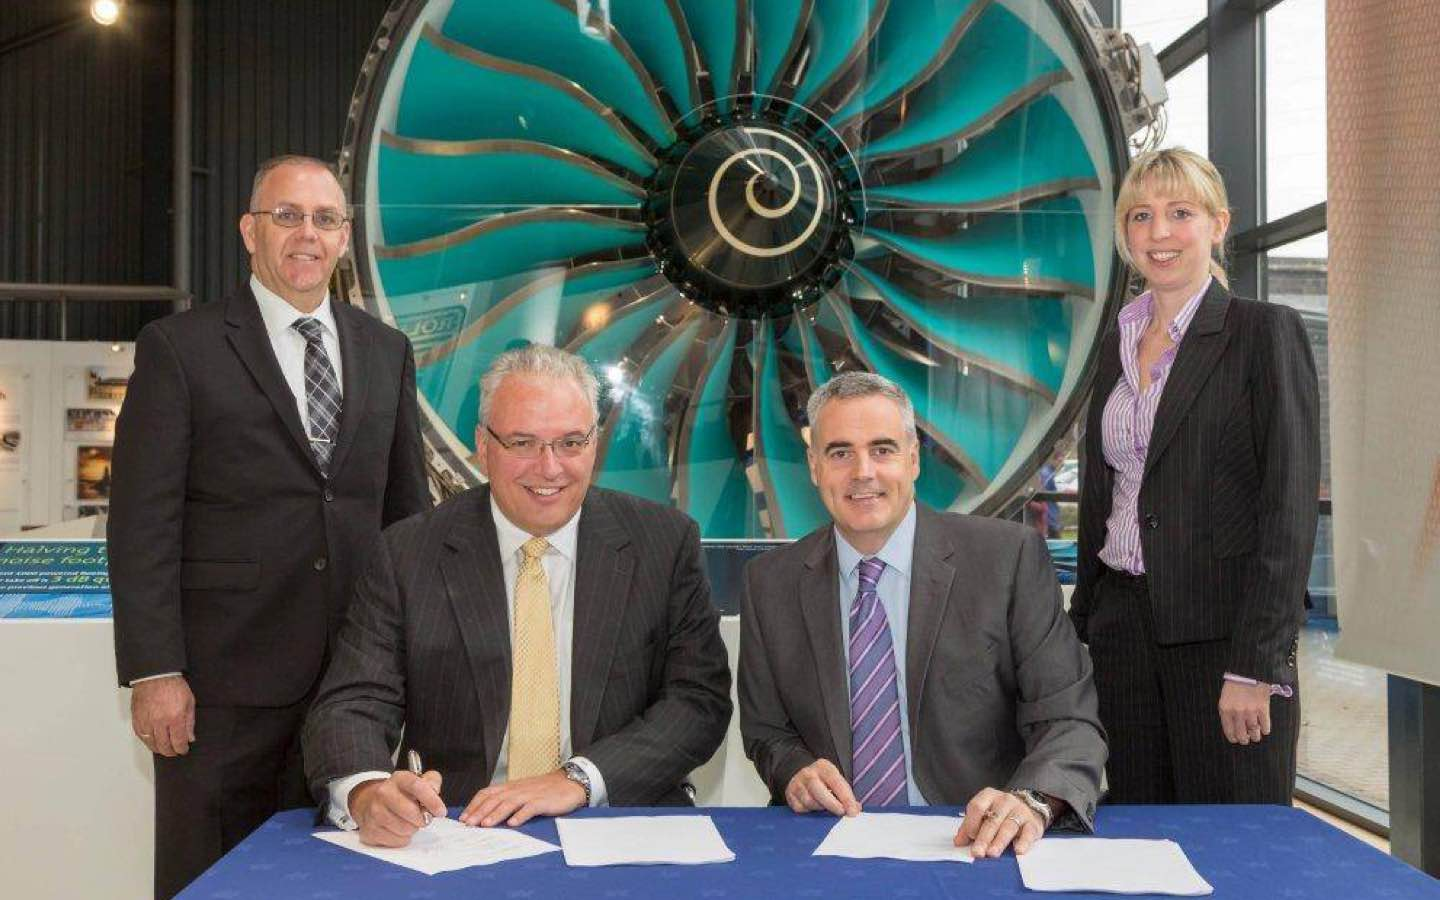 Image for Rhinestahl Selected to be a Preferred Supplier of Rolls-Royce - 2016-history@2x